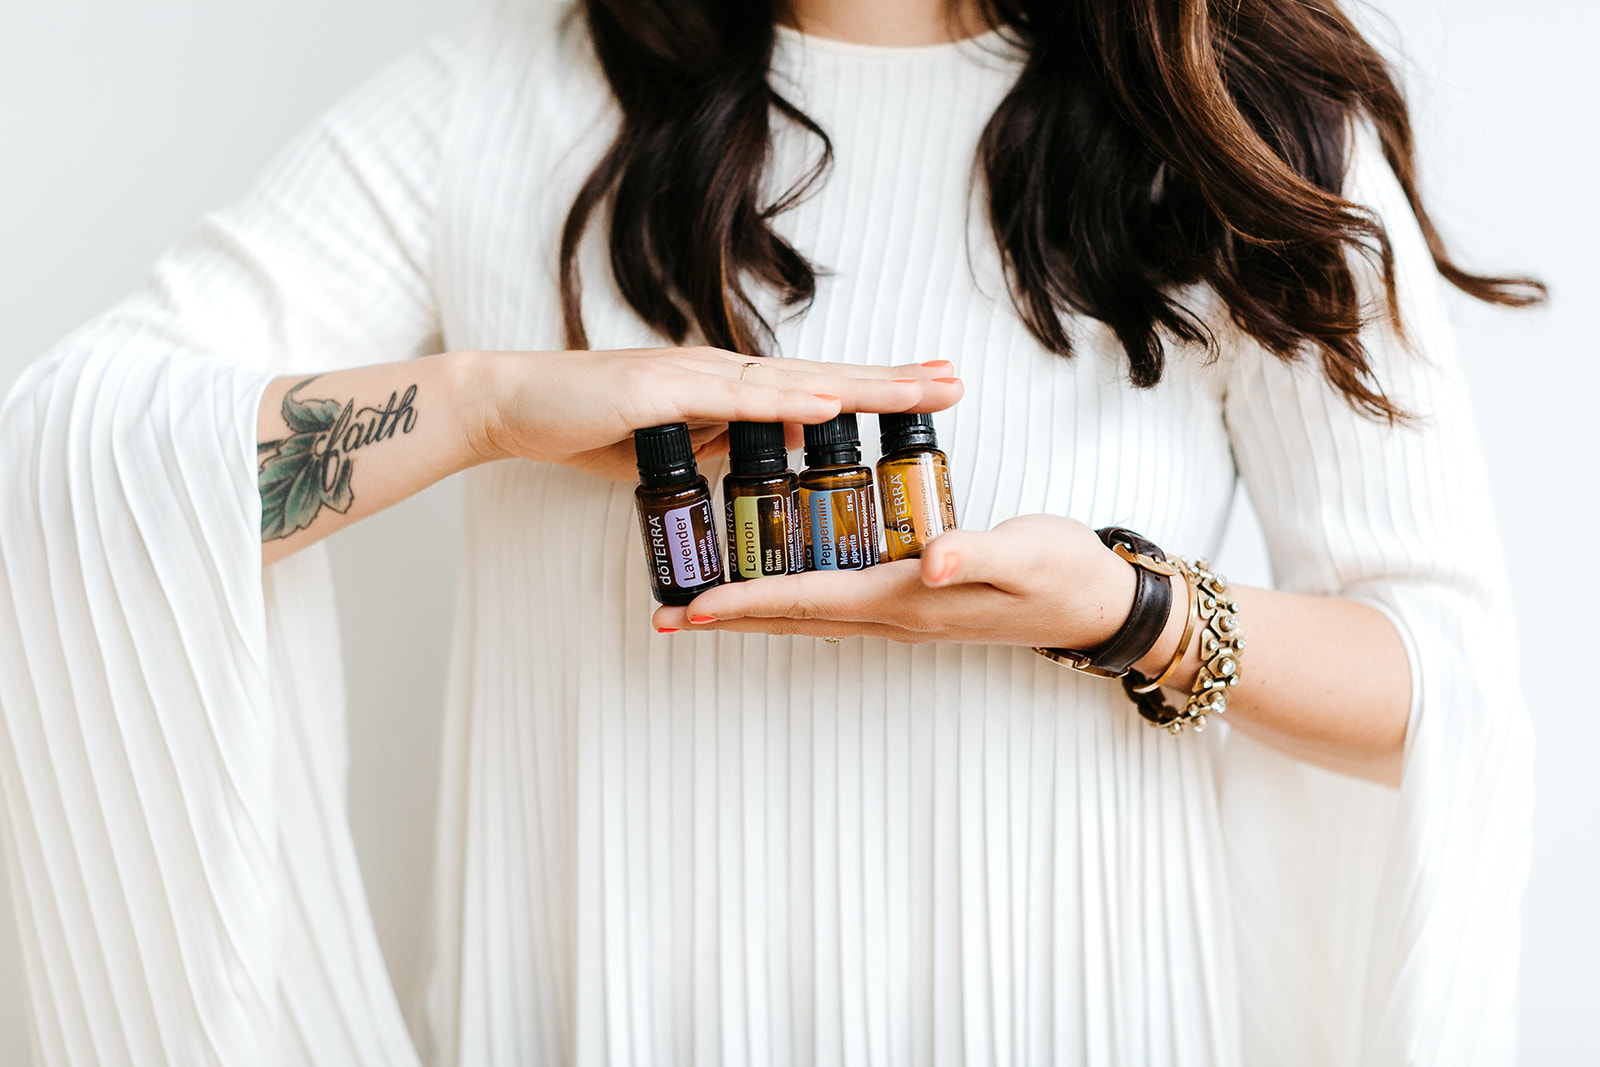 essential oils - Making the switch to plant medicine? Looking to up level your home + health? Essential oils are Earth's gift to bring your body + life into balance.